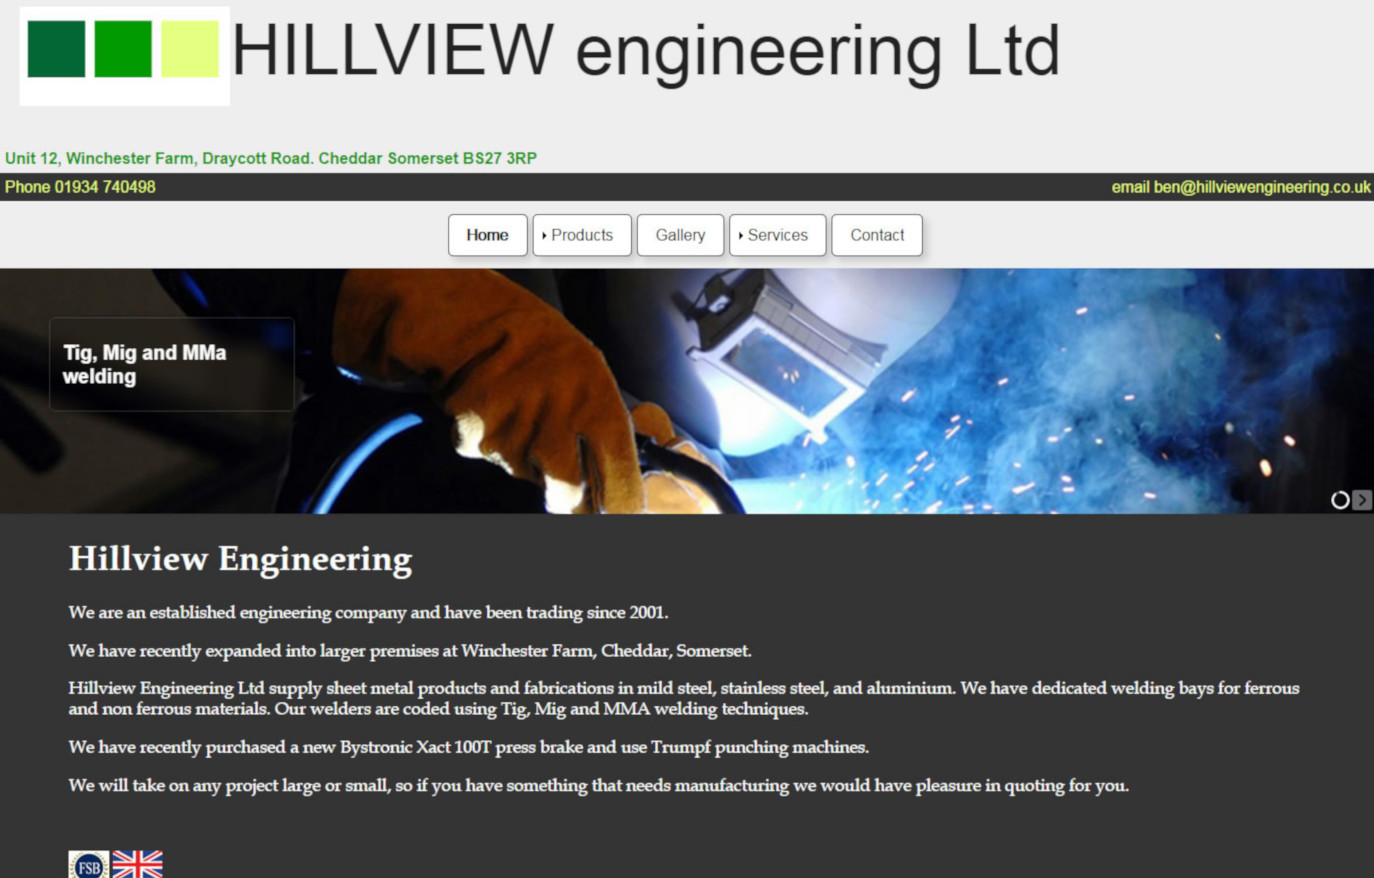 Hillview Engineering